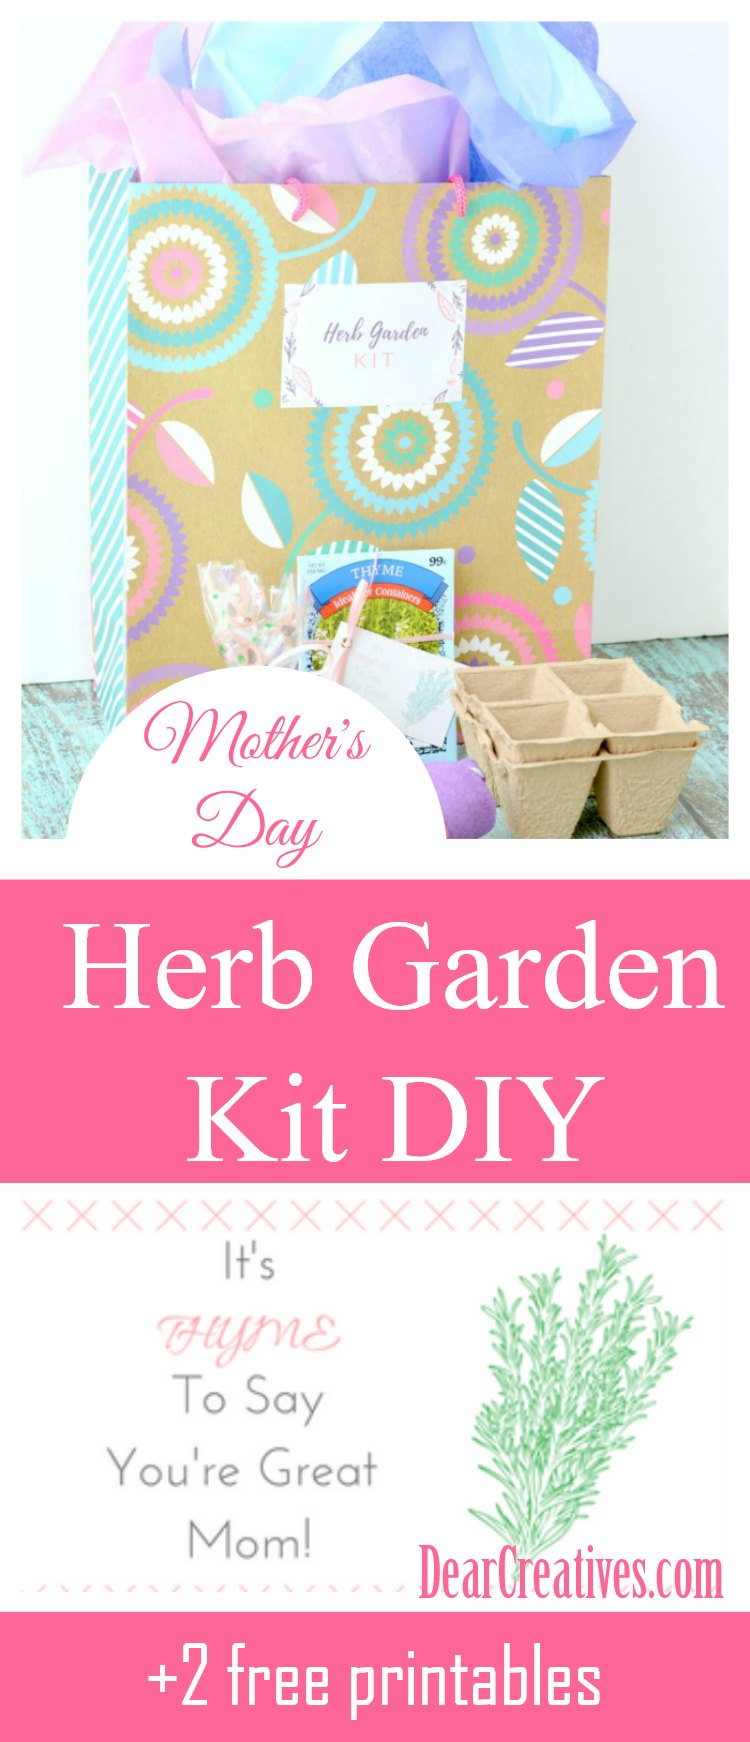 Mother's Day Gift DIY Herb Garden Kit DIY This is an easy to make Mother's Day gift idea. Plus you get 2 free printables to use. See this and more Mother's Day Ideas DearCreatives.com #mothersday #giftideas #herb #garden #diy #gardenkit #teachersgift #earthday